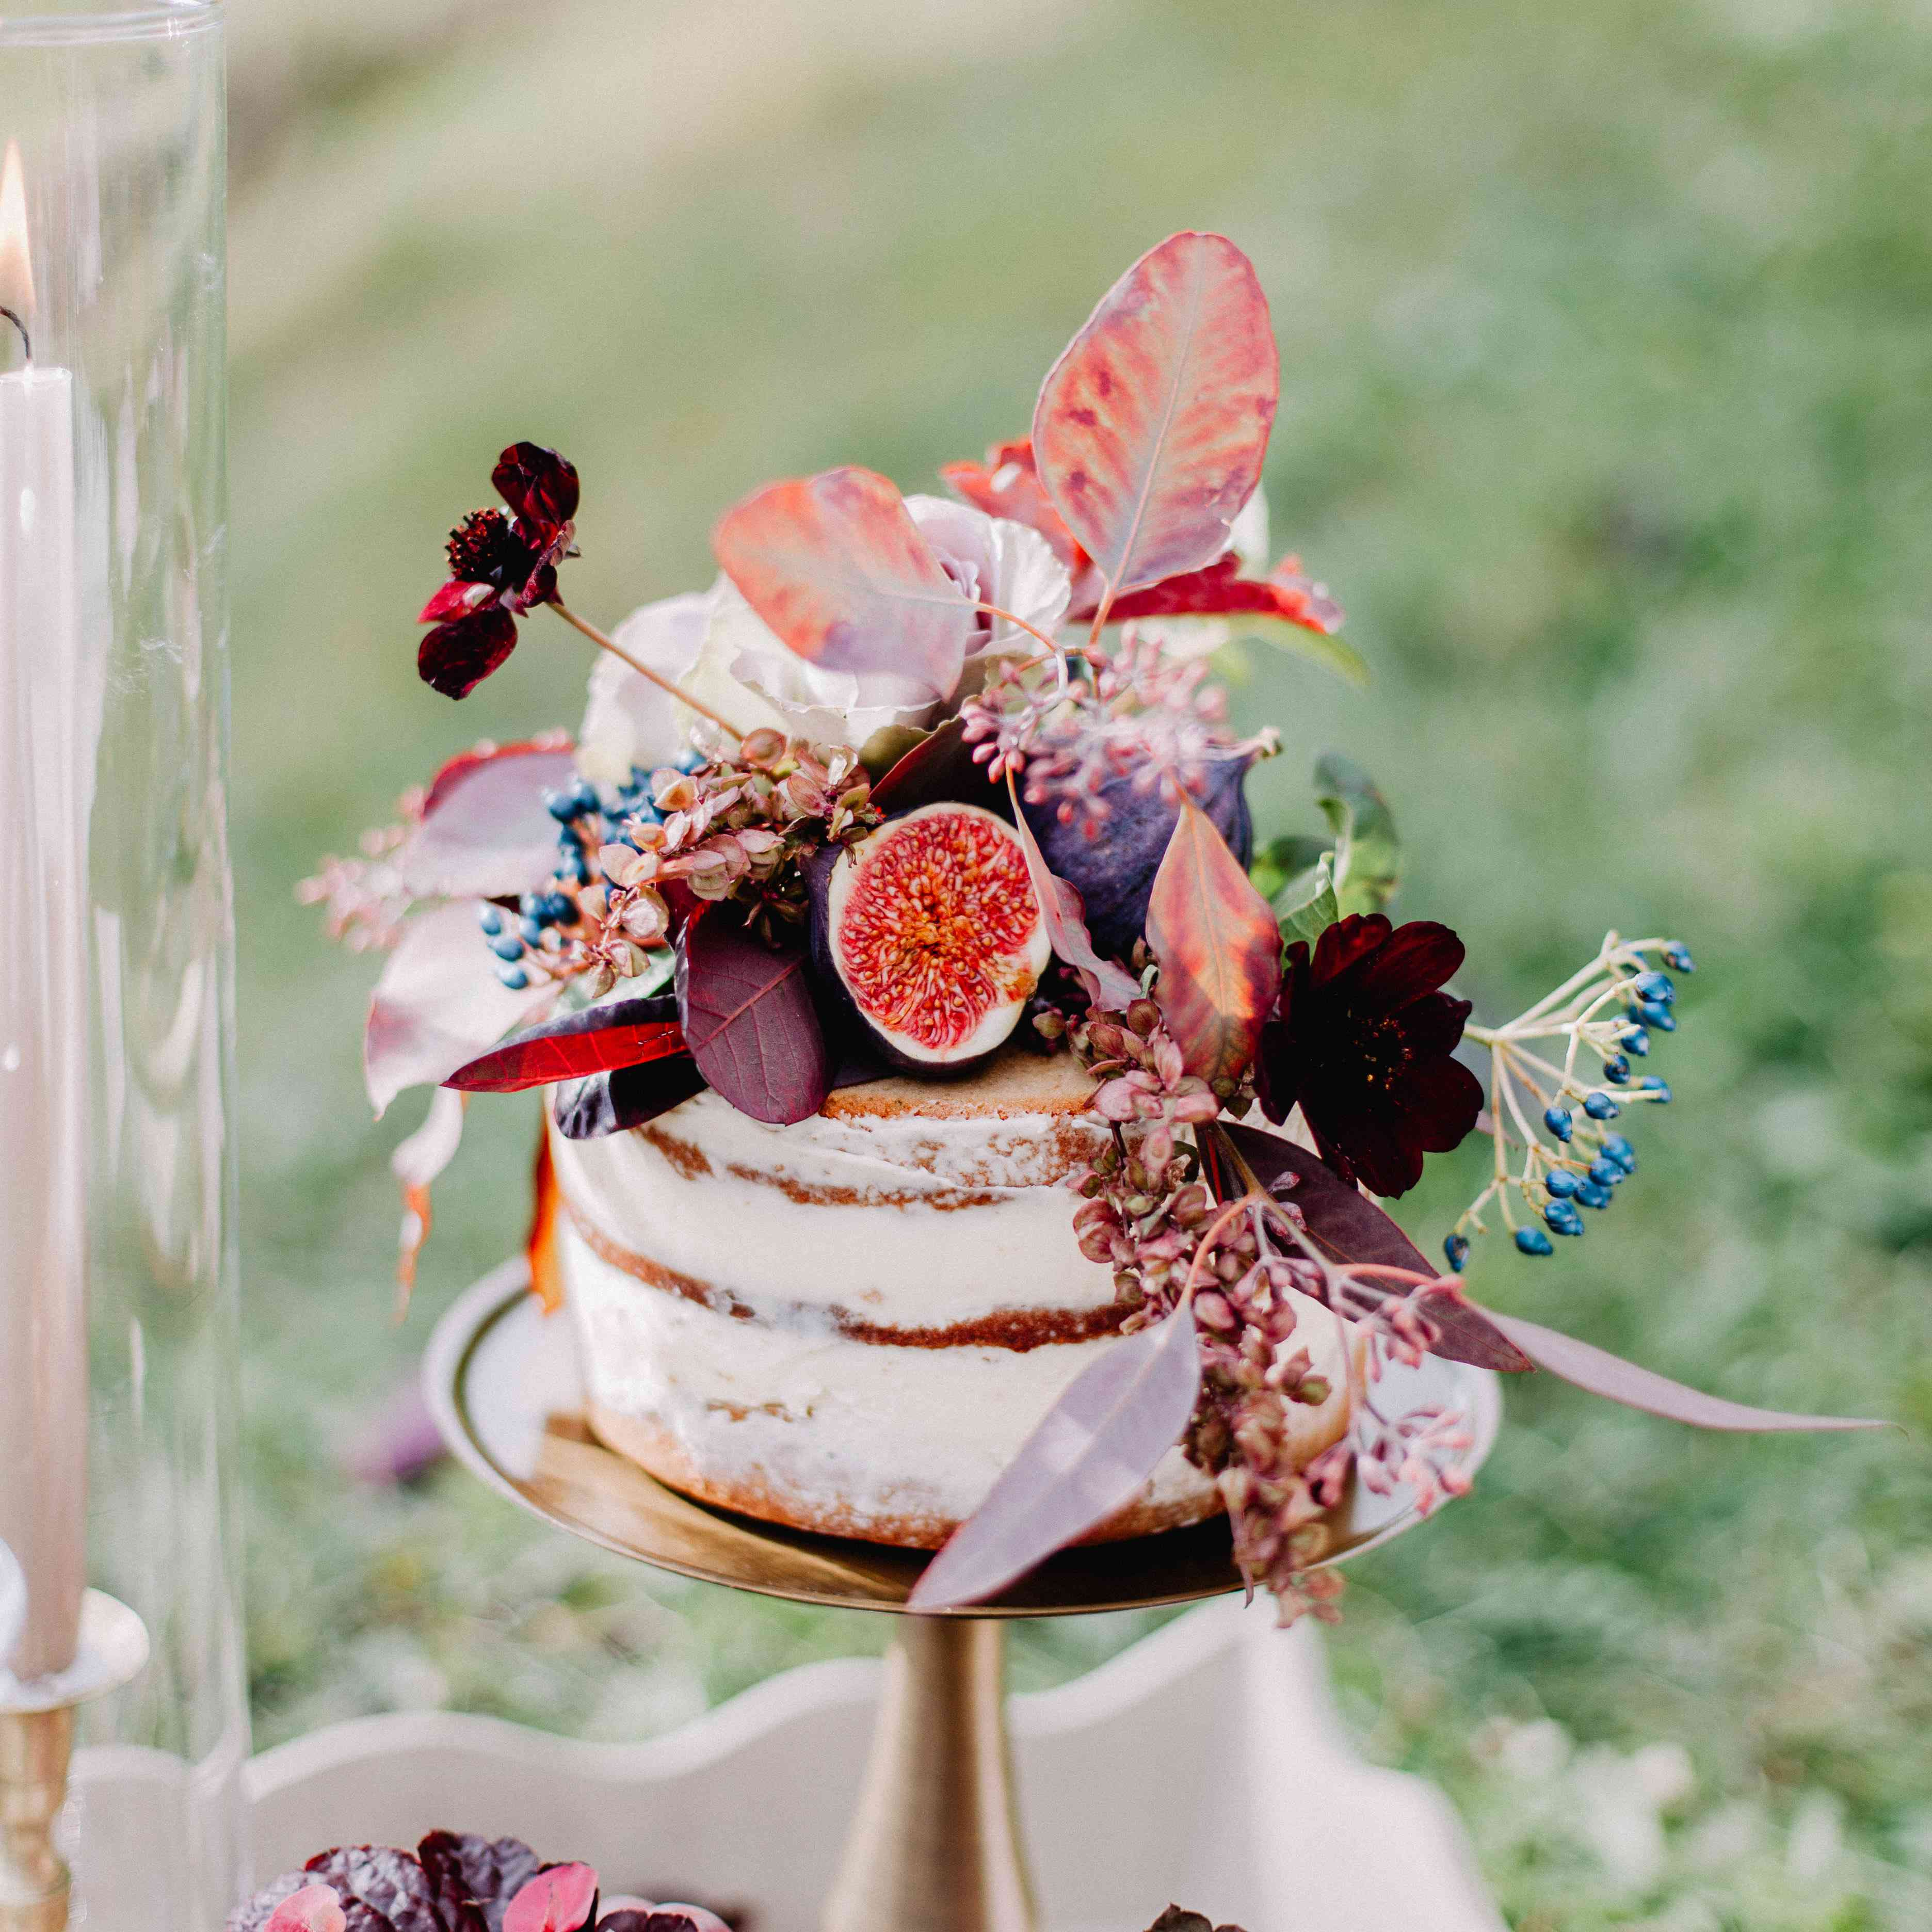 Semi-naked wedding cake with colorful fruit and floral accents